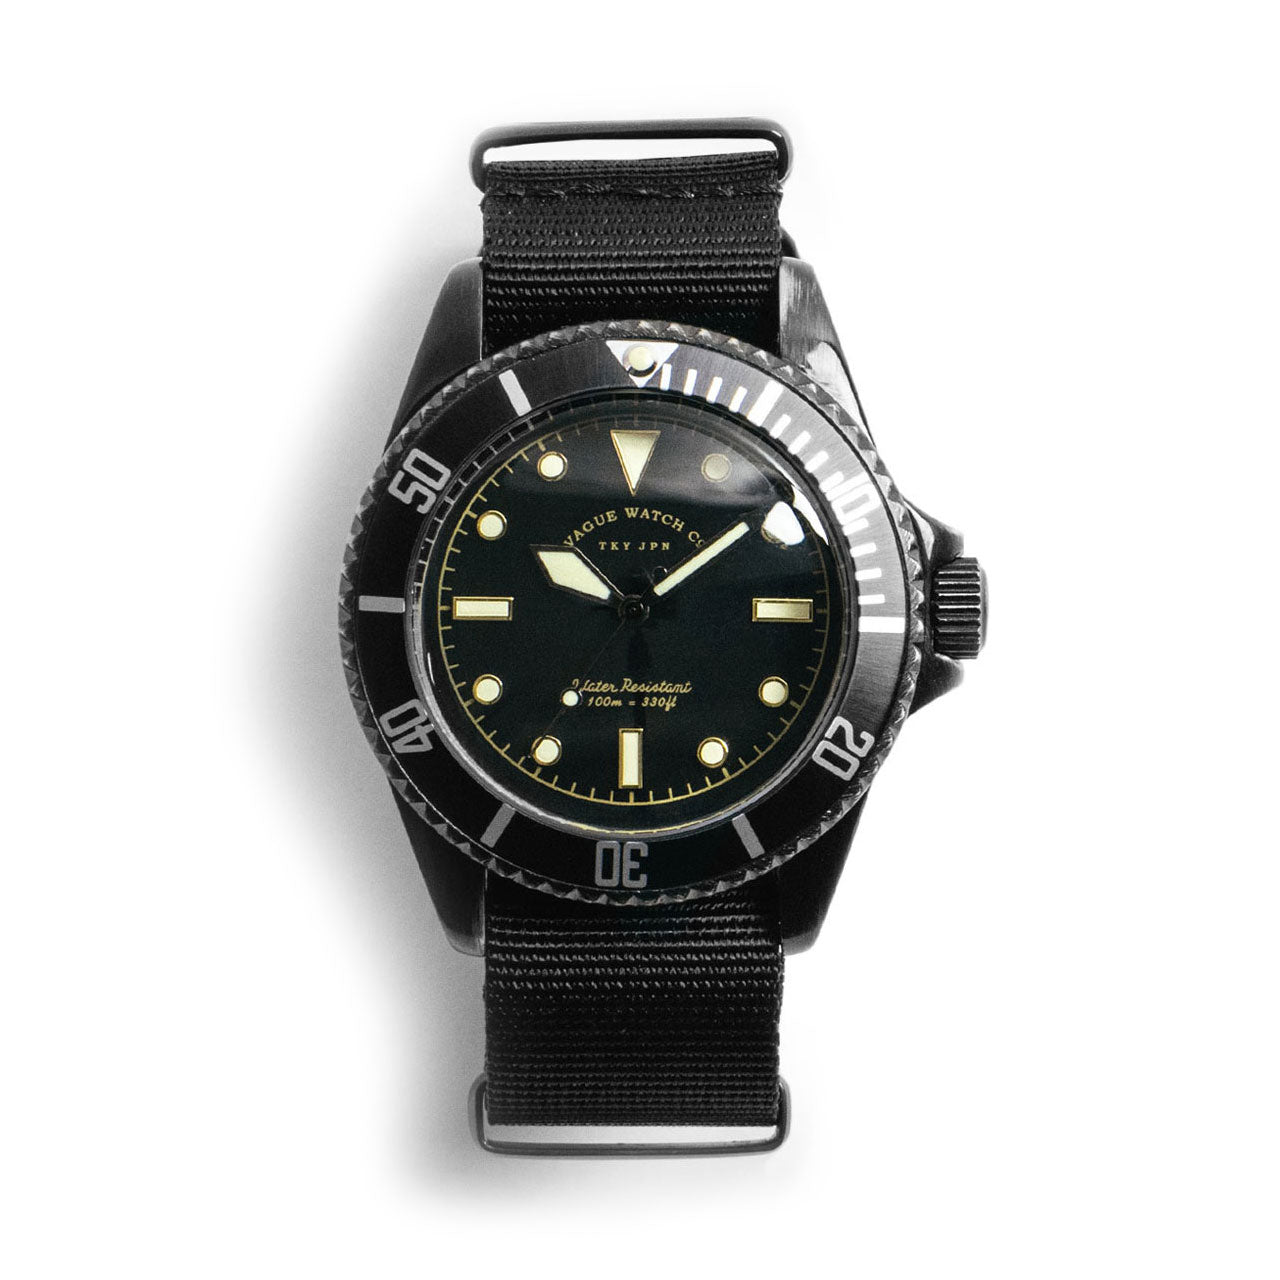 Vague Black Submariner Watch